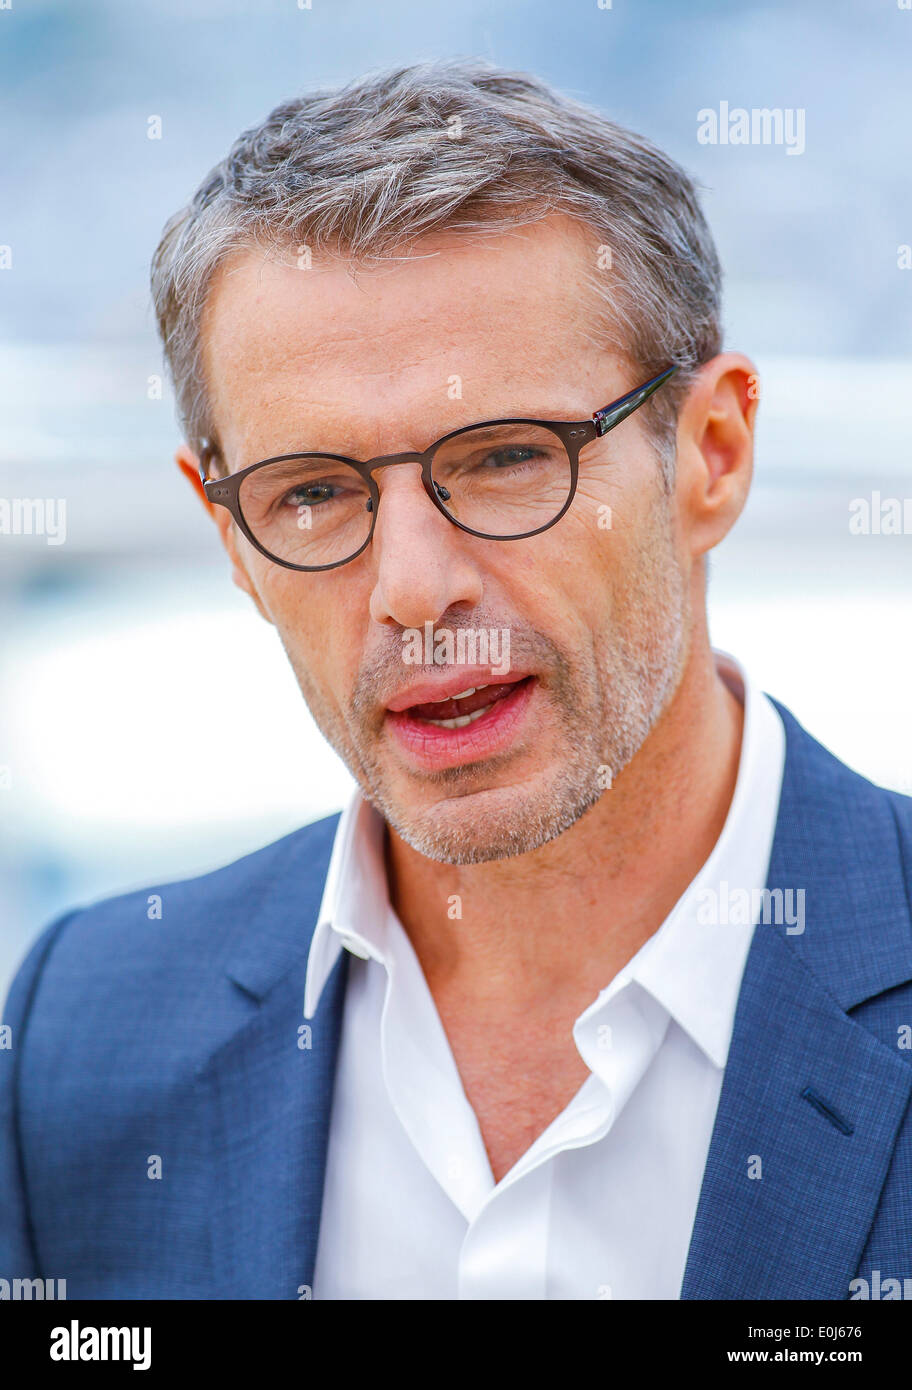 LAMBERT WILSON MASTER OF CEREMONIES PHOTOCALL. 67TH CANNES FILM FESTIVAL CANNES  FRANCE 14 May 2014 - Stock Image